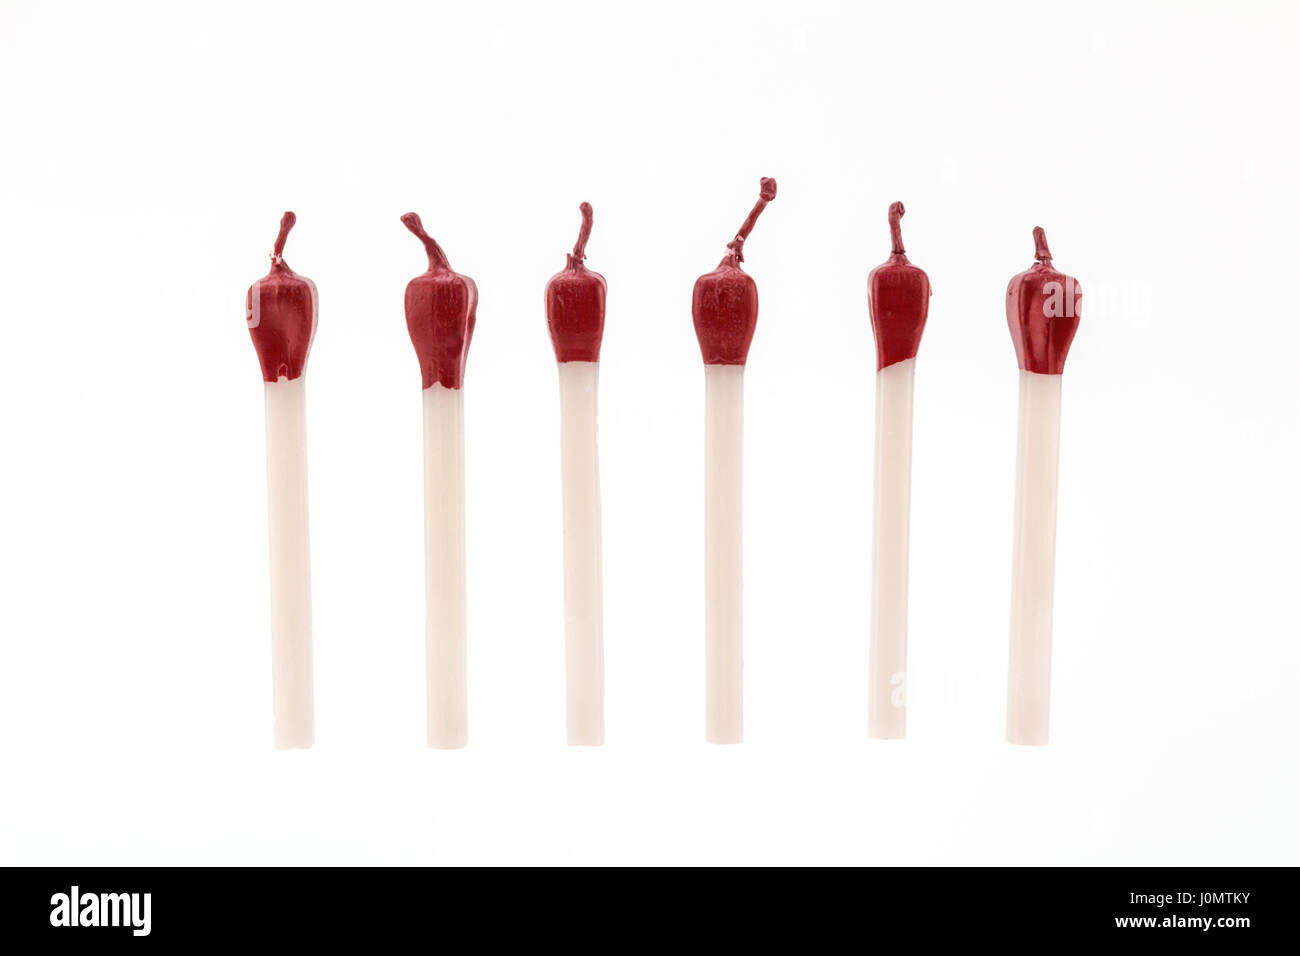 Birthday candles isolated on white - fun match stick shapes - Stock Image